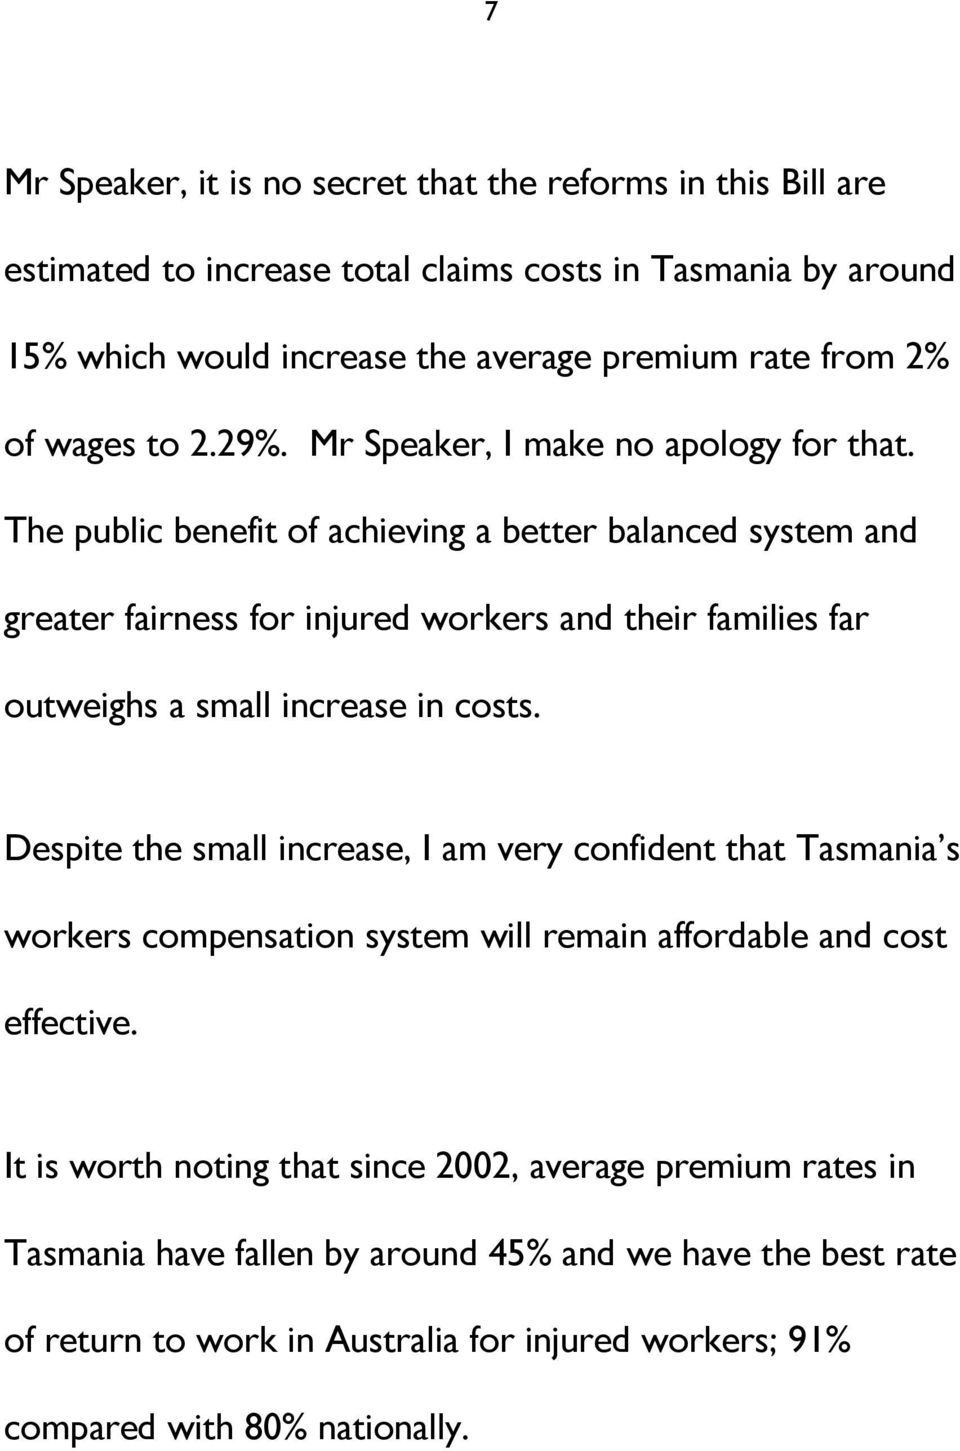 The public benefit of achieving a better balanced system and greater fairness for injured workers and their families far outweighs a small increase in costs.